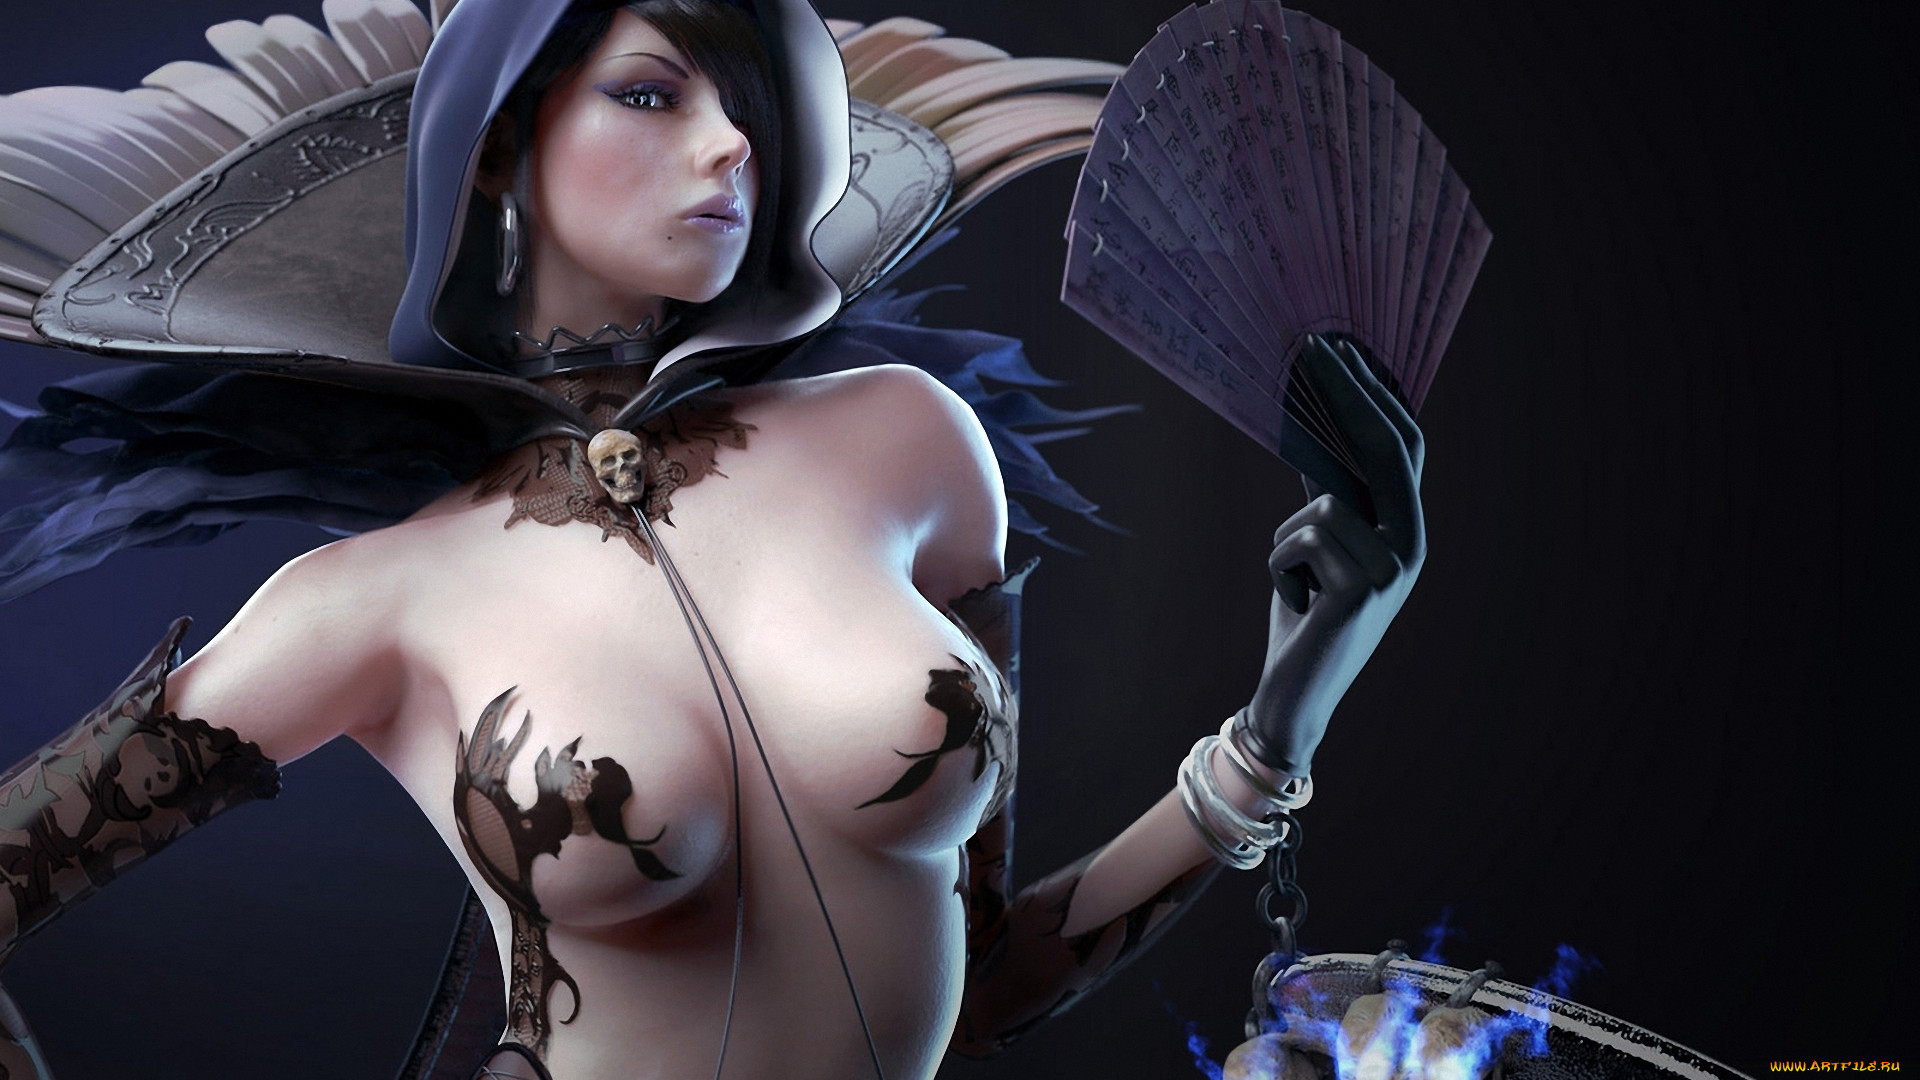 Nude fantasy mage sex females